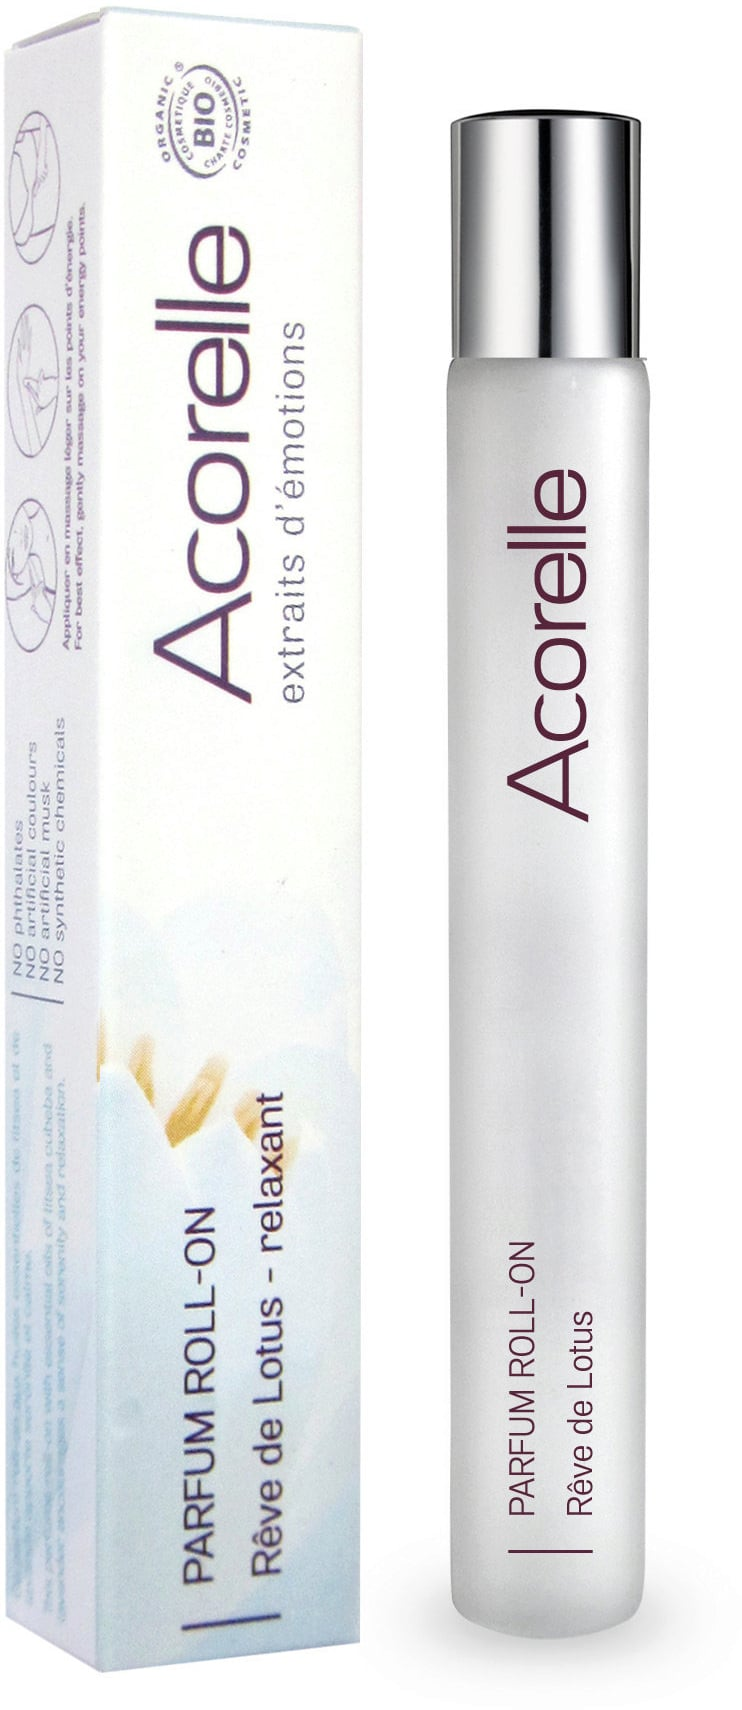 ACORELLE EDP Roll-on Reve de Lotus/ Lotusový sen